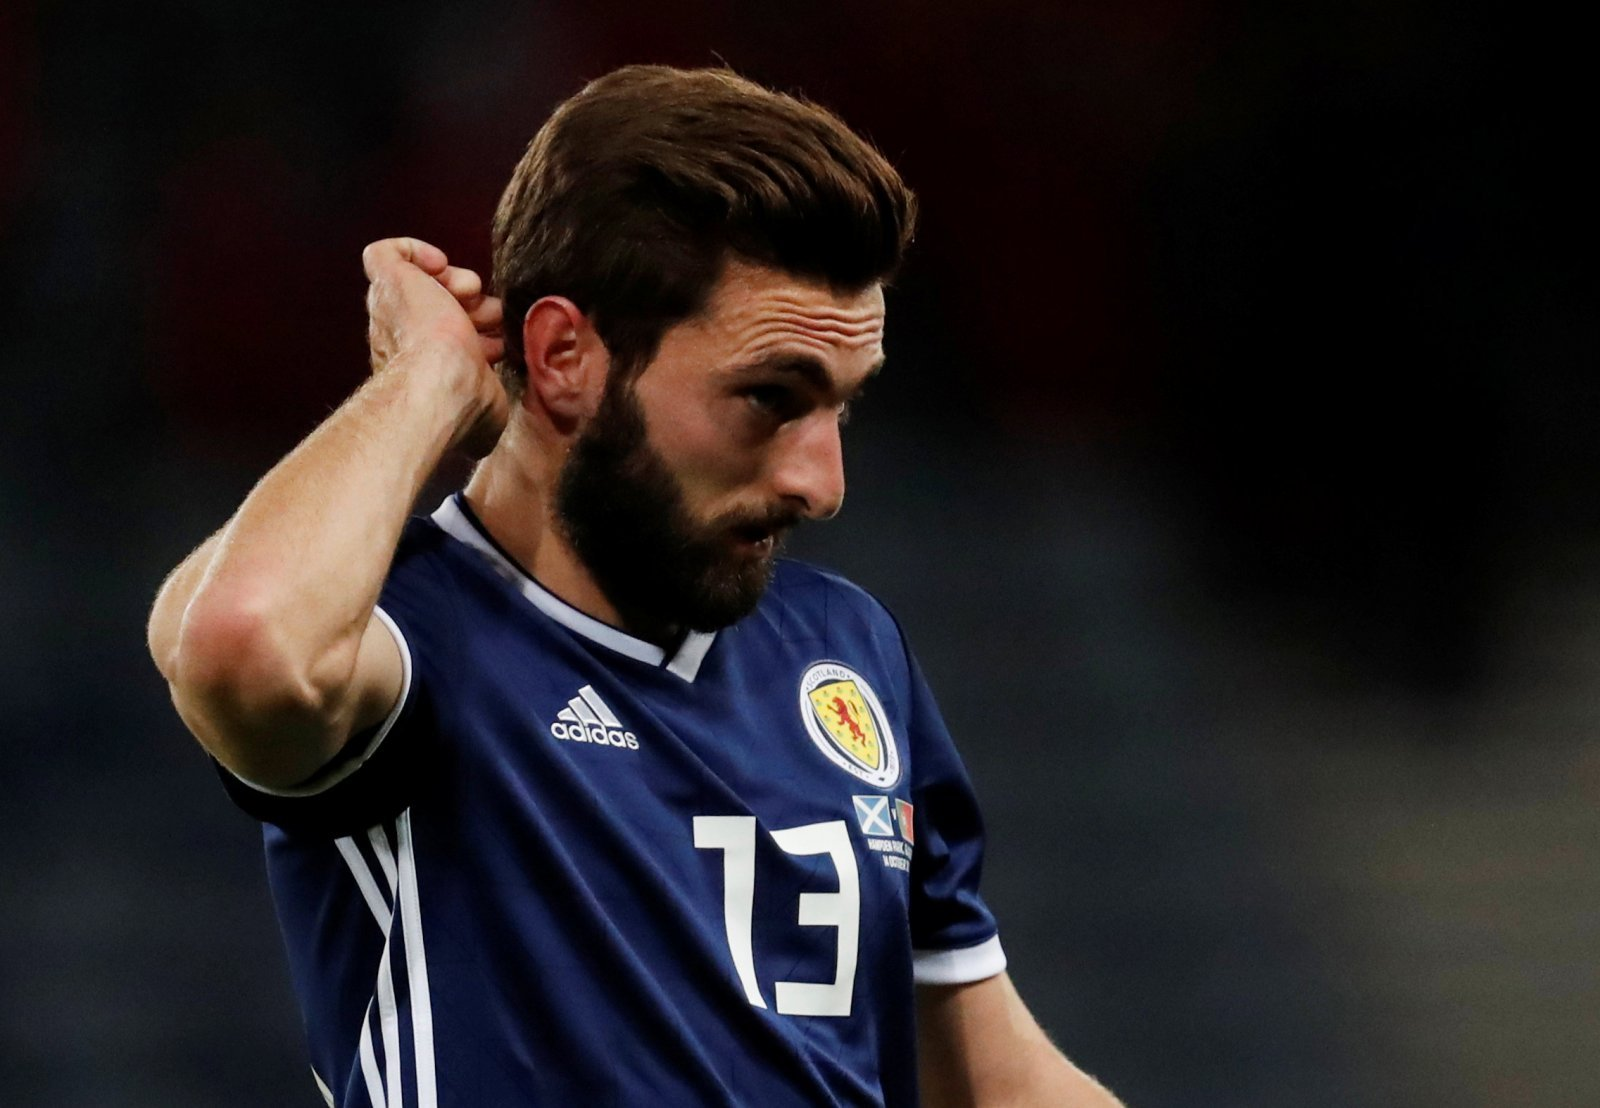 Graeme Shinnie set to turn down Rangers interest for move to England